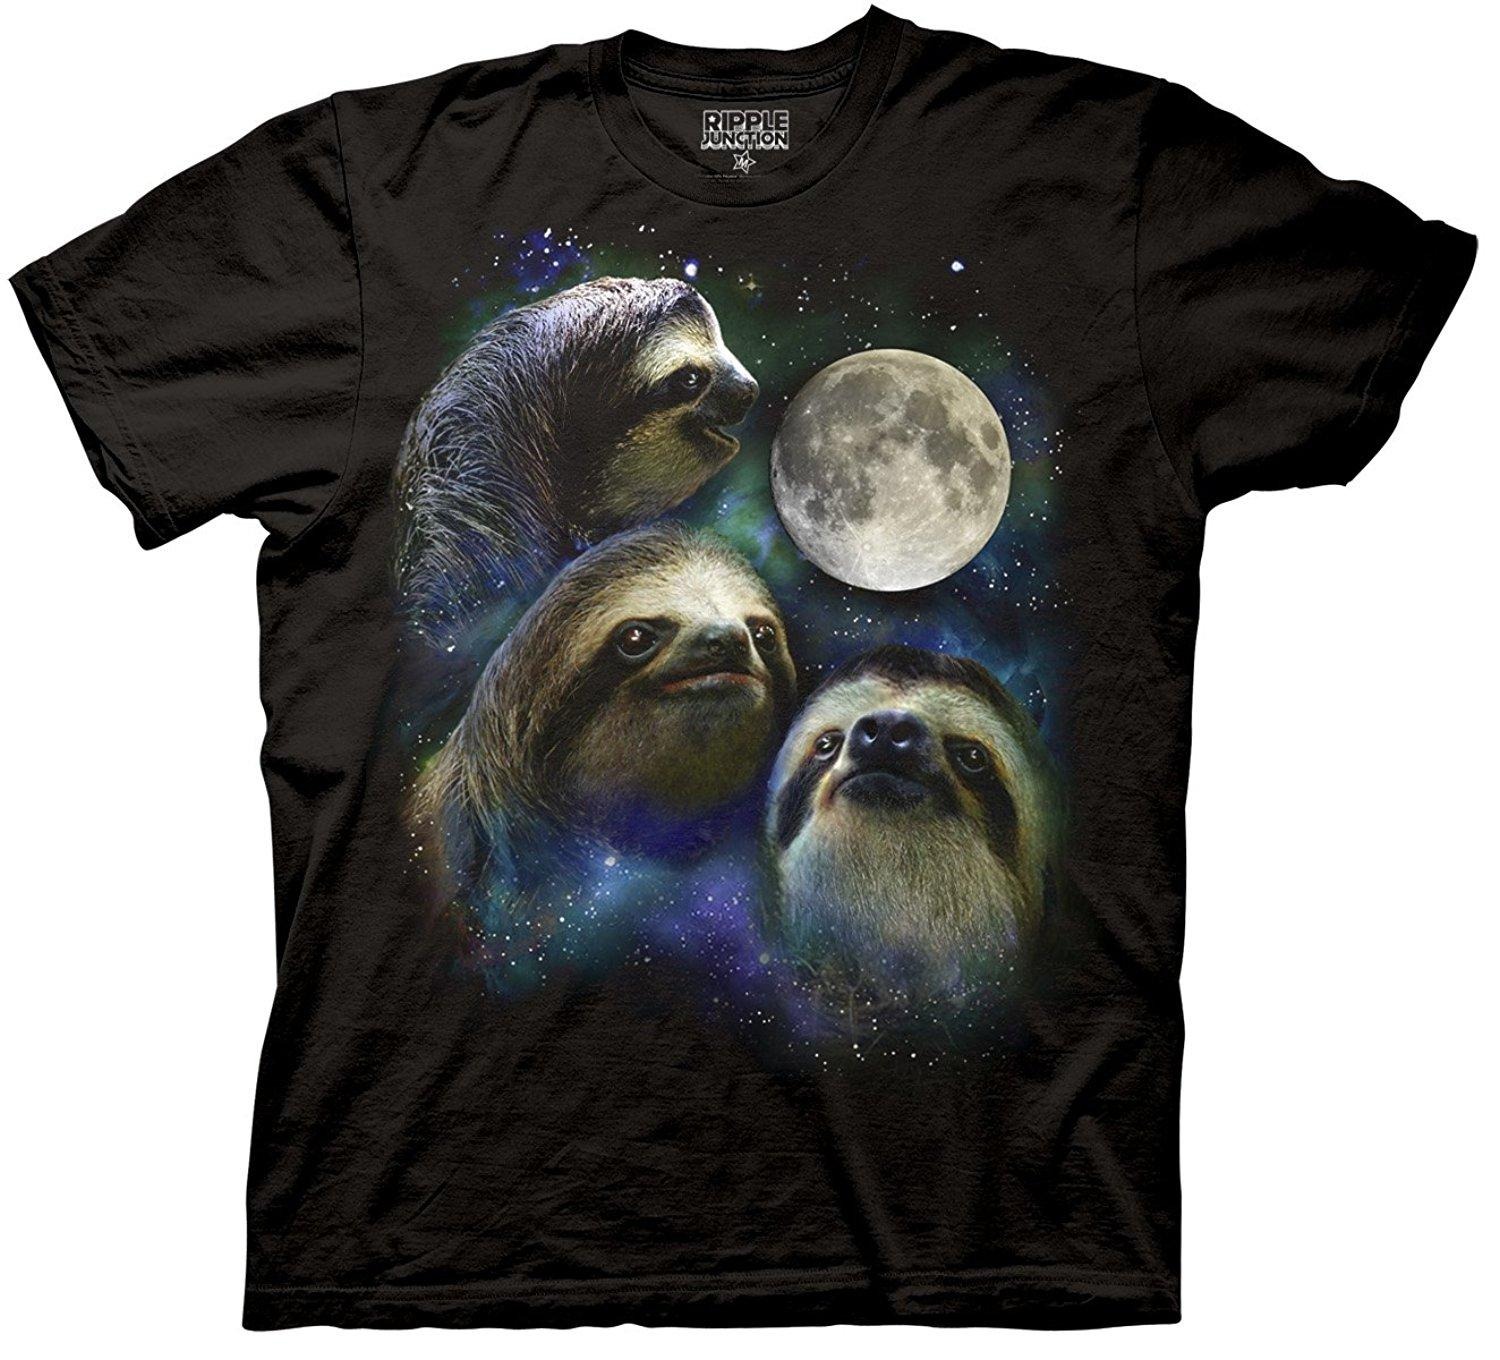 Wholesale Discount Three Wholesale Discount Shirt Parody - Three Sloth Moon Shirt - 100% Cotton T-shirt Tee